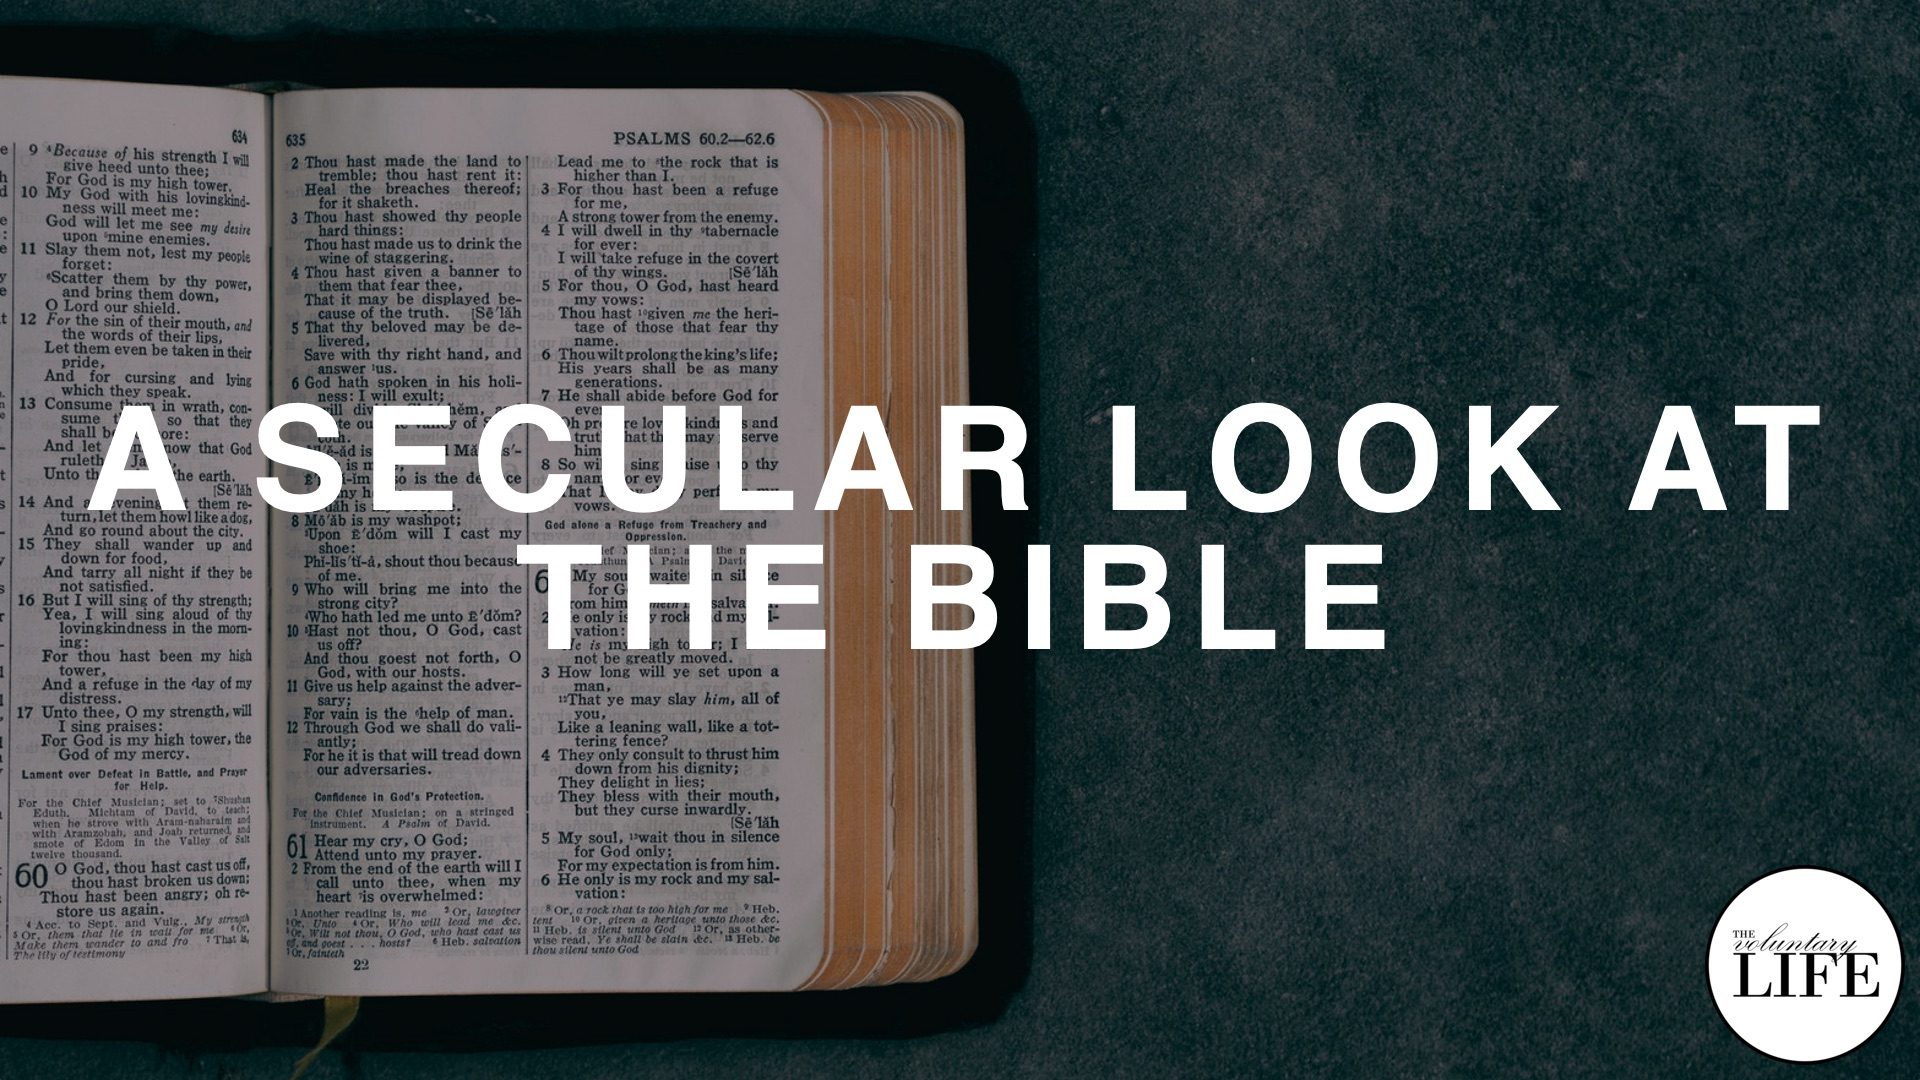 361 A Secular Look At The Bible